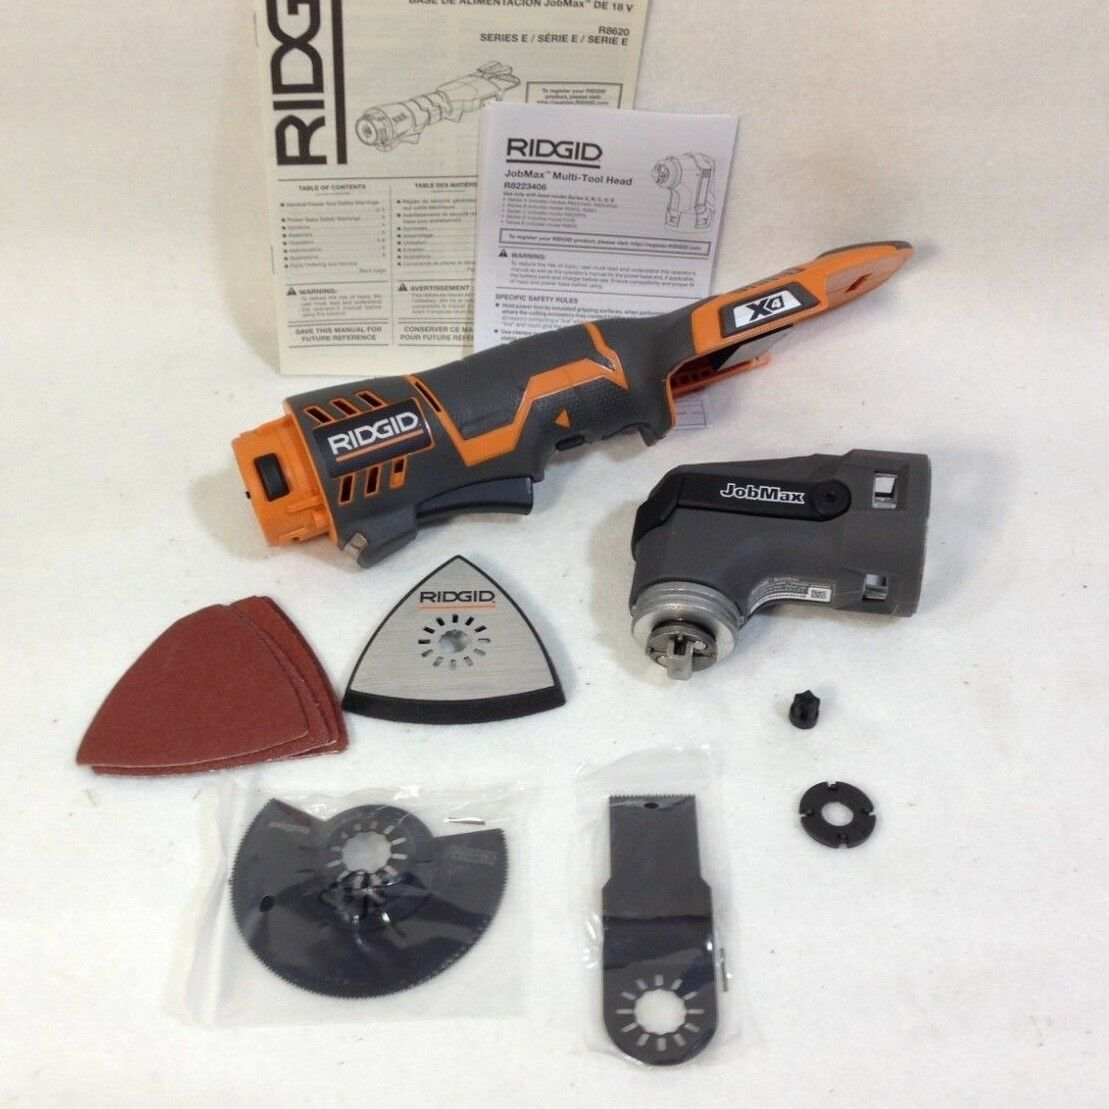 RIDGID R862005 - JOBMAX R8620 SERIES E 18-VOLT MULTI TOOL WITH R8223406 HEAD NEW